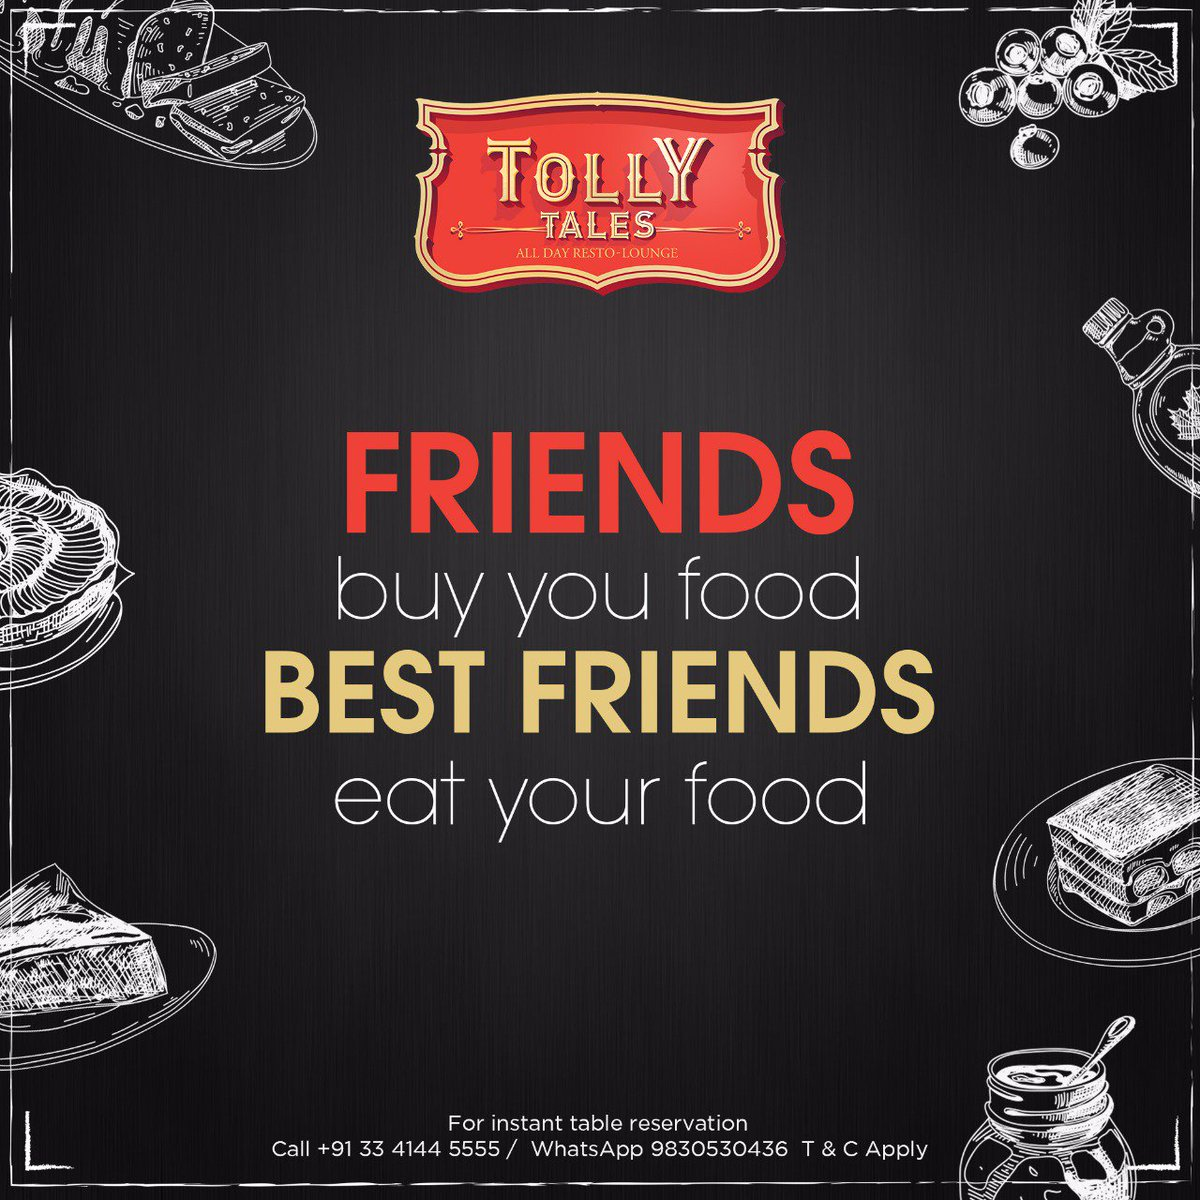 &quot;Friends buy you food. Best friends eat your food.&quot;  Have a dinner / lunch with your friends at @TollyTales. We assure that you will have a great fun time.  For Table Reservations call at +91 3341445555, WhatsApp at +91 9830530436.  #Restaurant #Kolkata #GoodFood #Foodie  <br>http://pic.twitter.com/3L7QssltrA